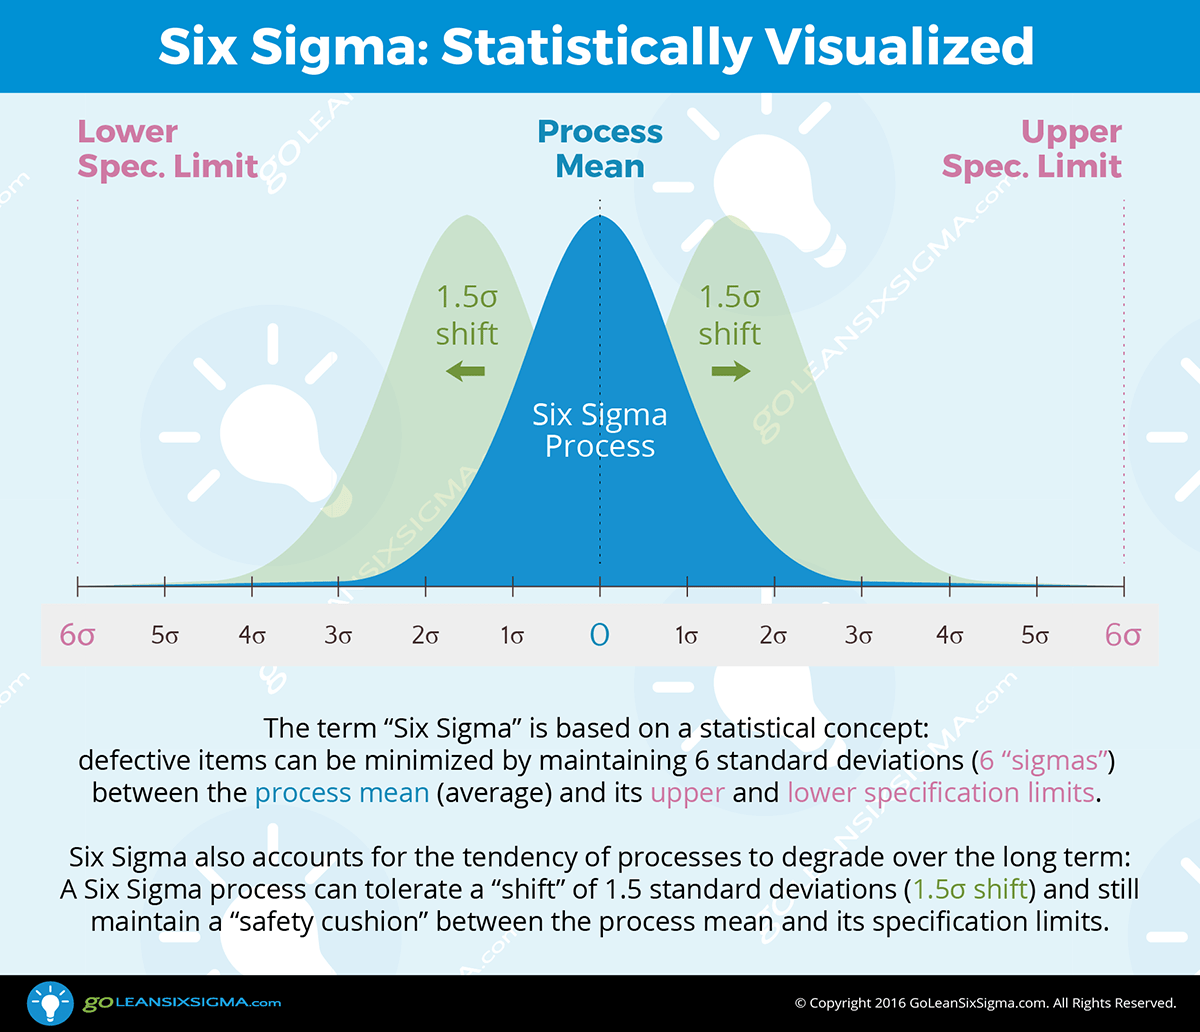 Six Sigma Statistically Visualized GoLeanSixSigma.com